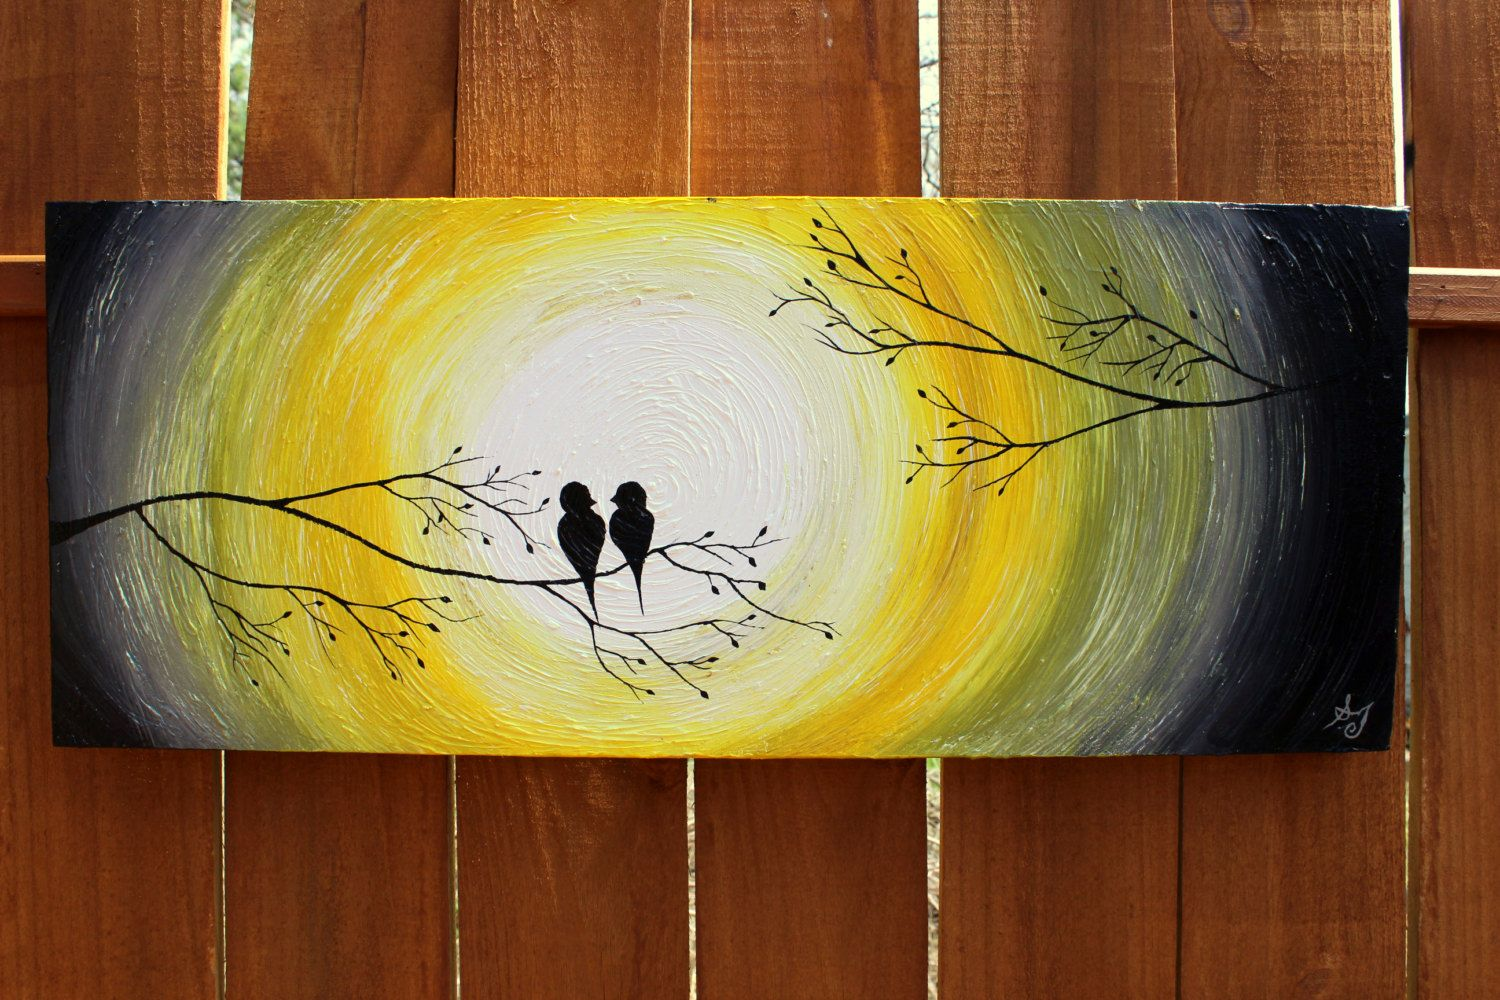 Grey and Yellow: Love Birds in the Sunrise/Sunset on a Tree Limb ...